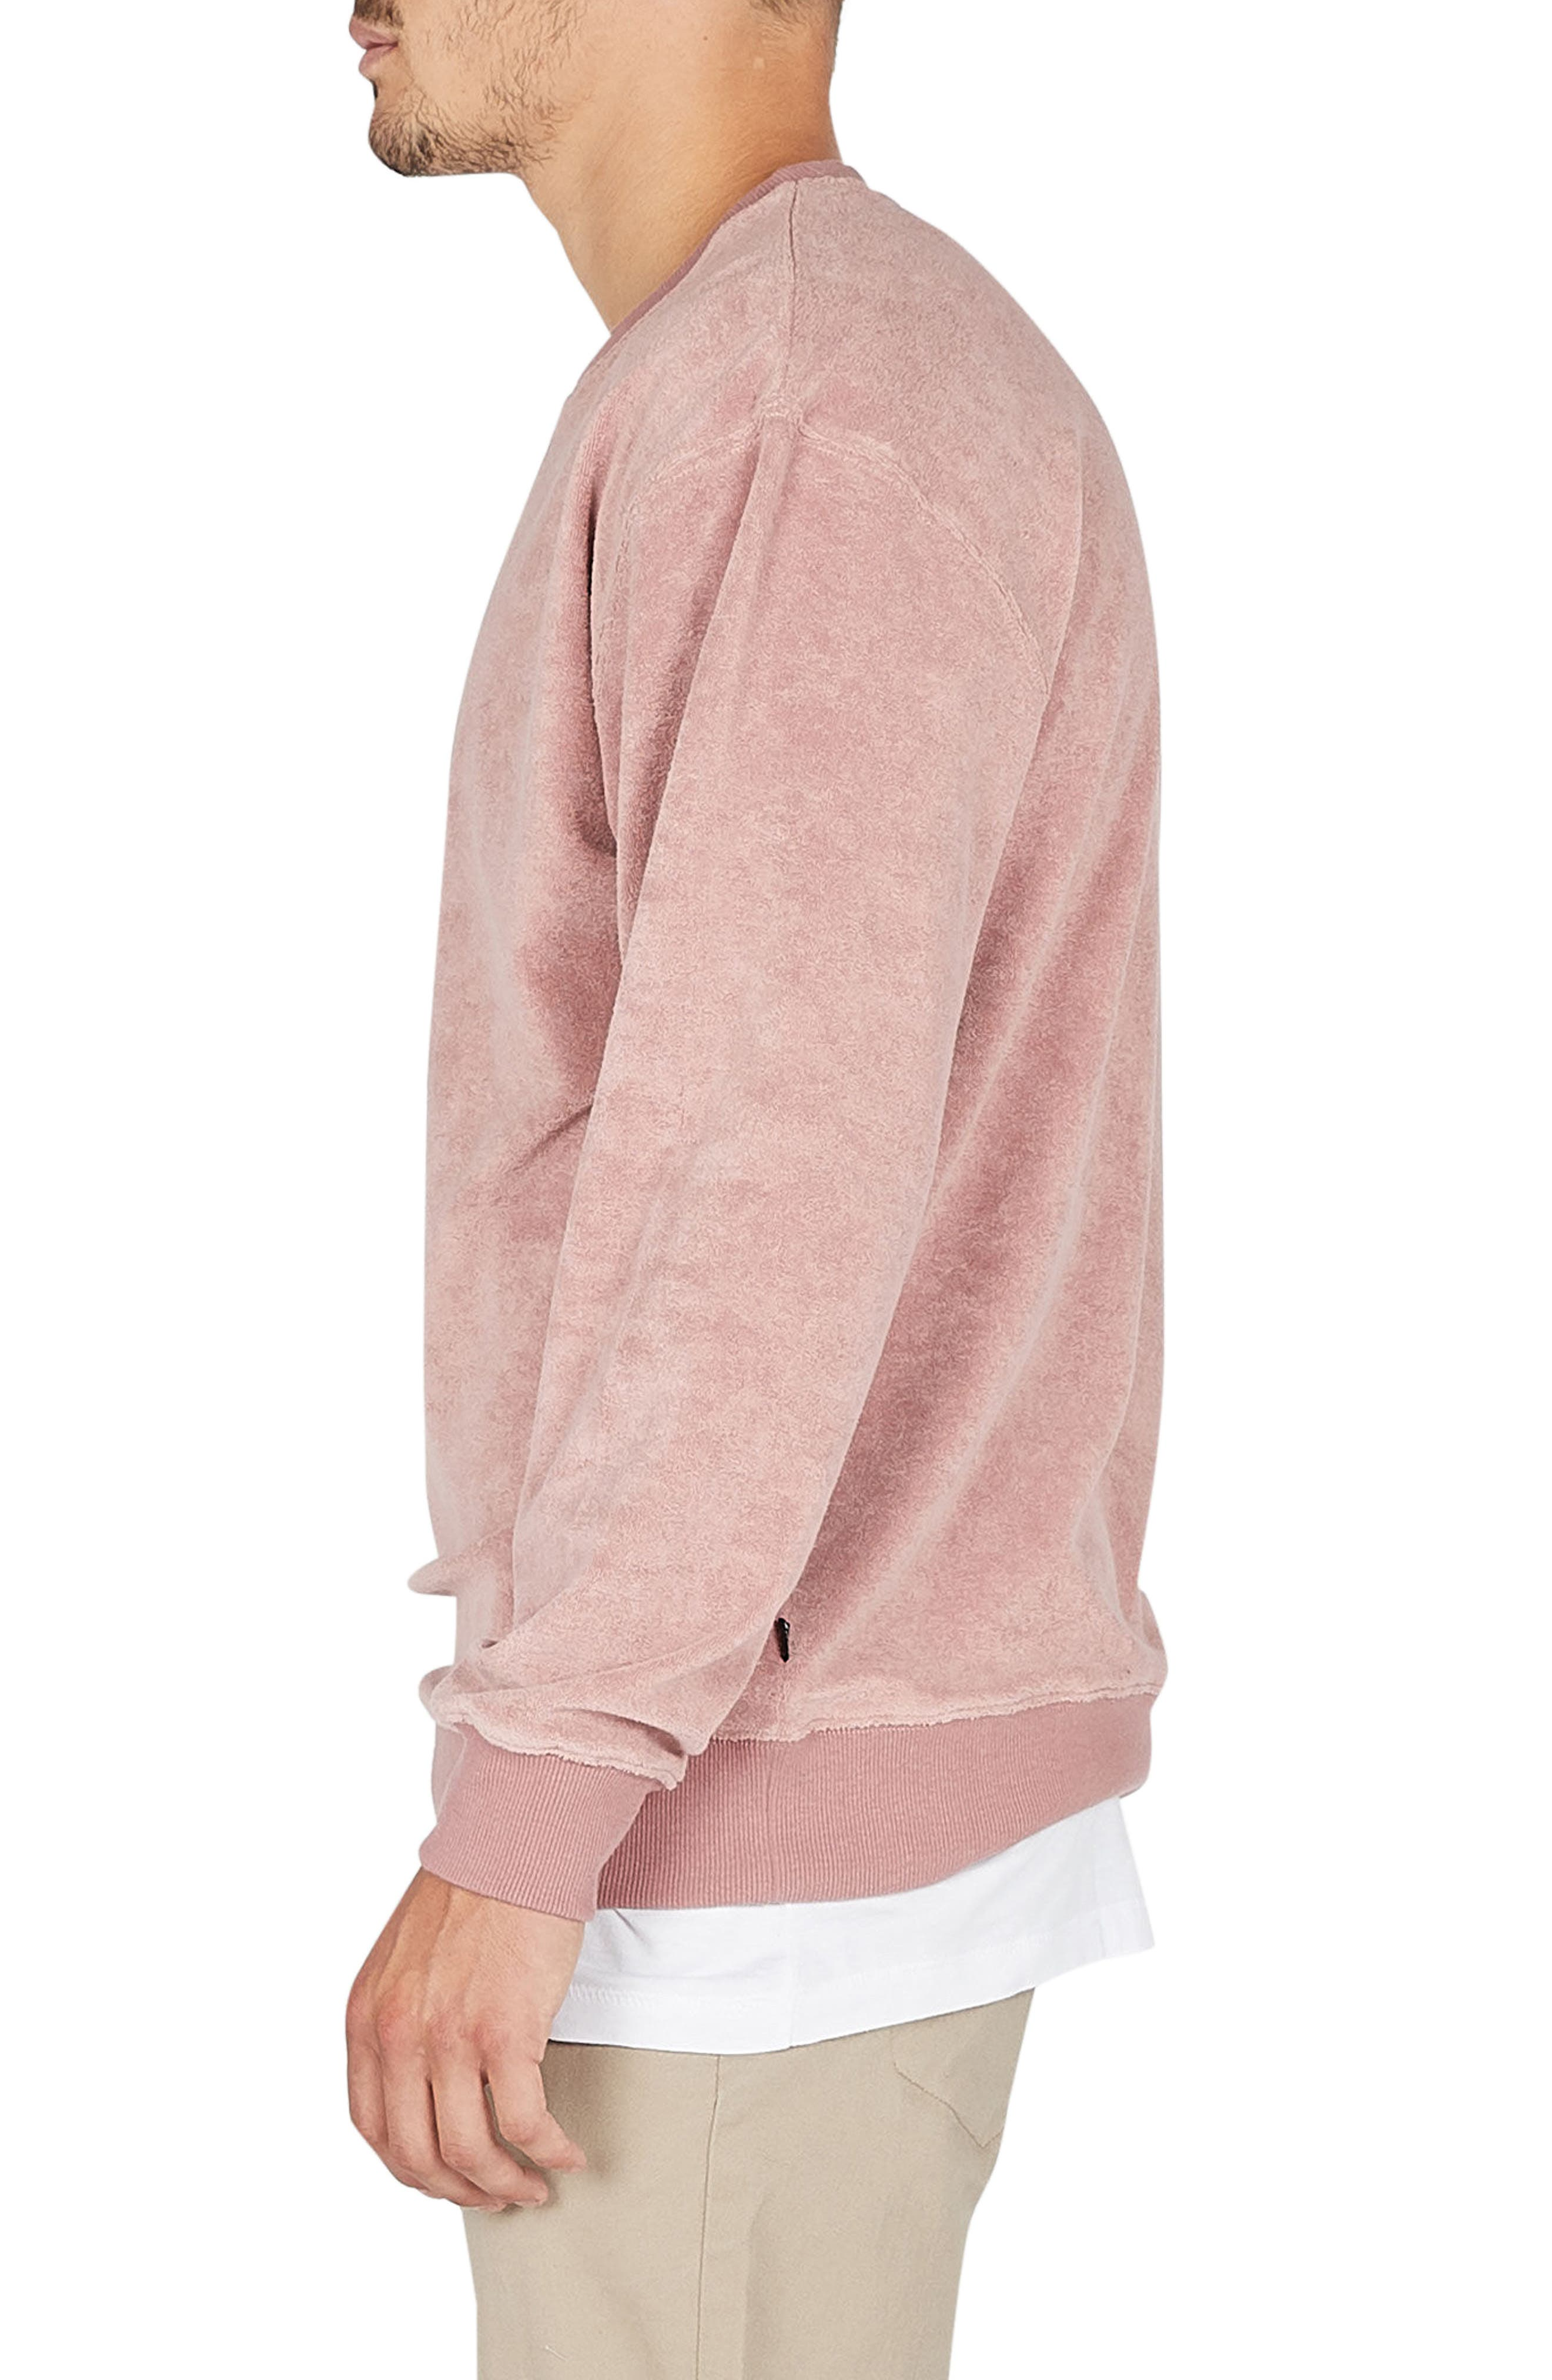 Terry Sweatshirt,                             Alternate thumbnail 3, color,                             Rose